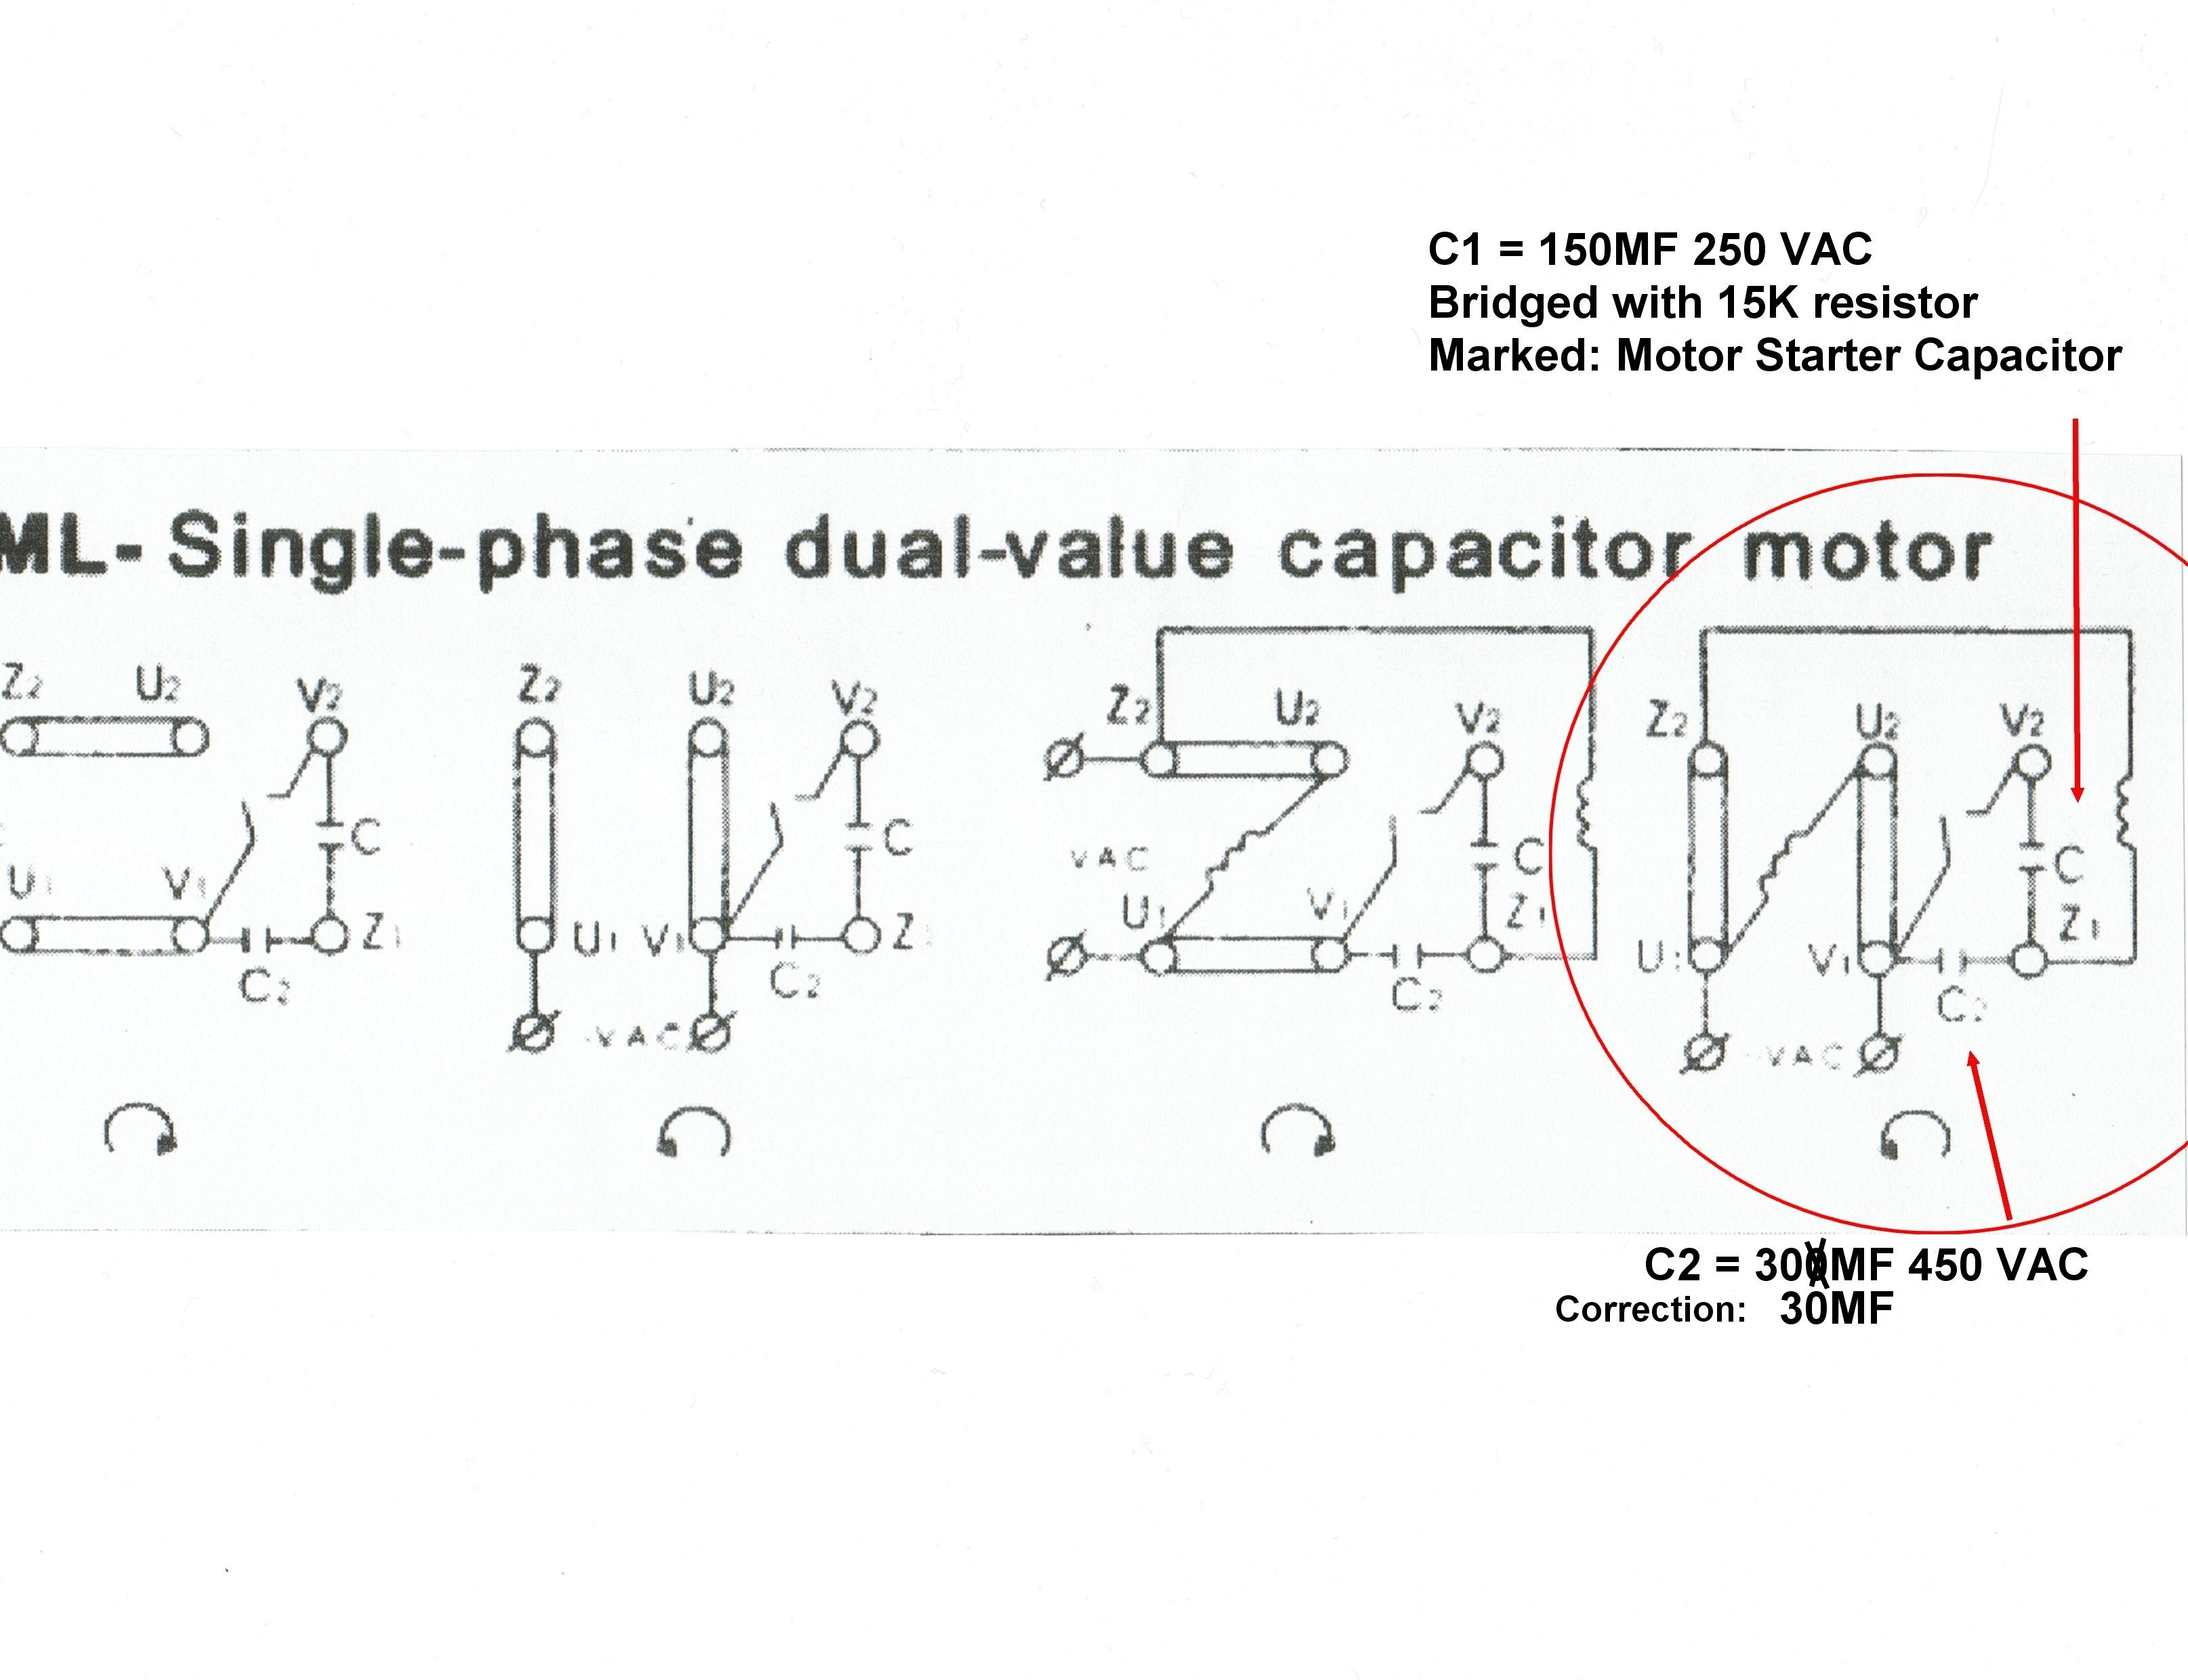 Motor Capacitor Wiring Diagram